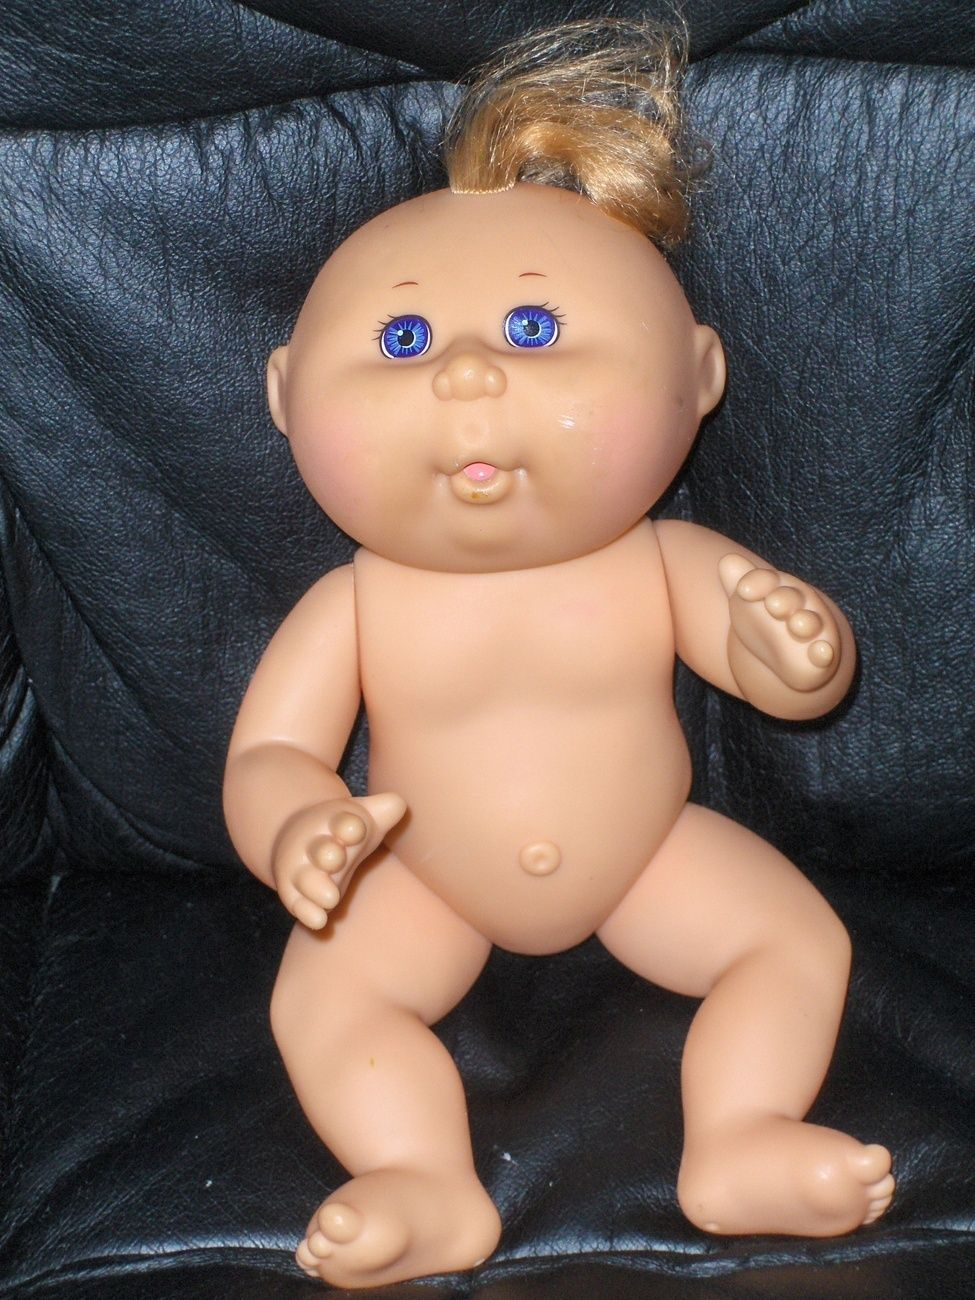 Baby Cabbage Patch Doll Mattel First Edition 1991 | Cabbage Patch ...